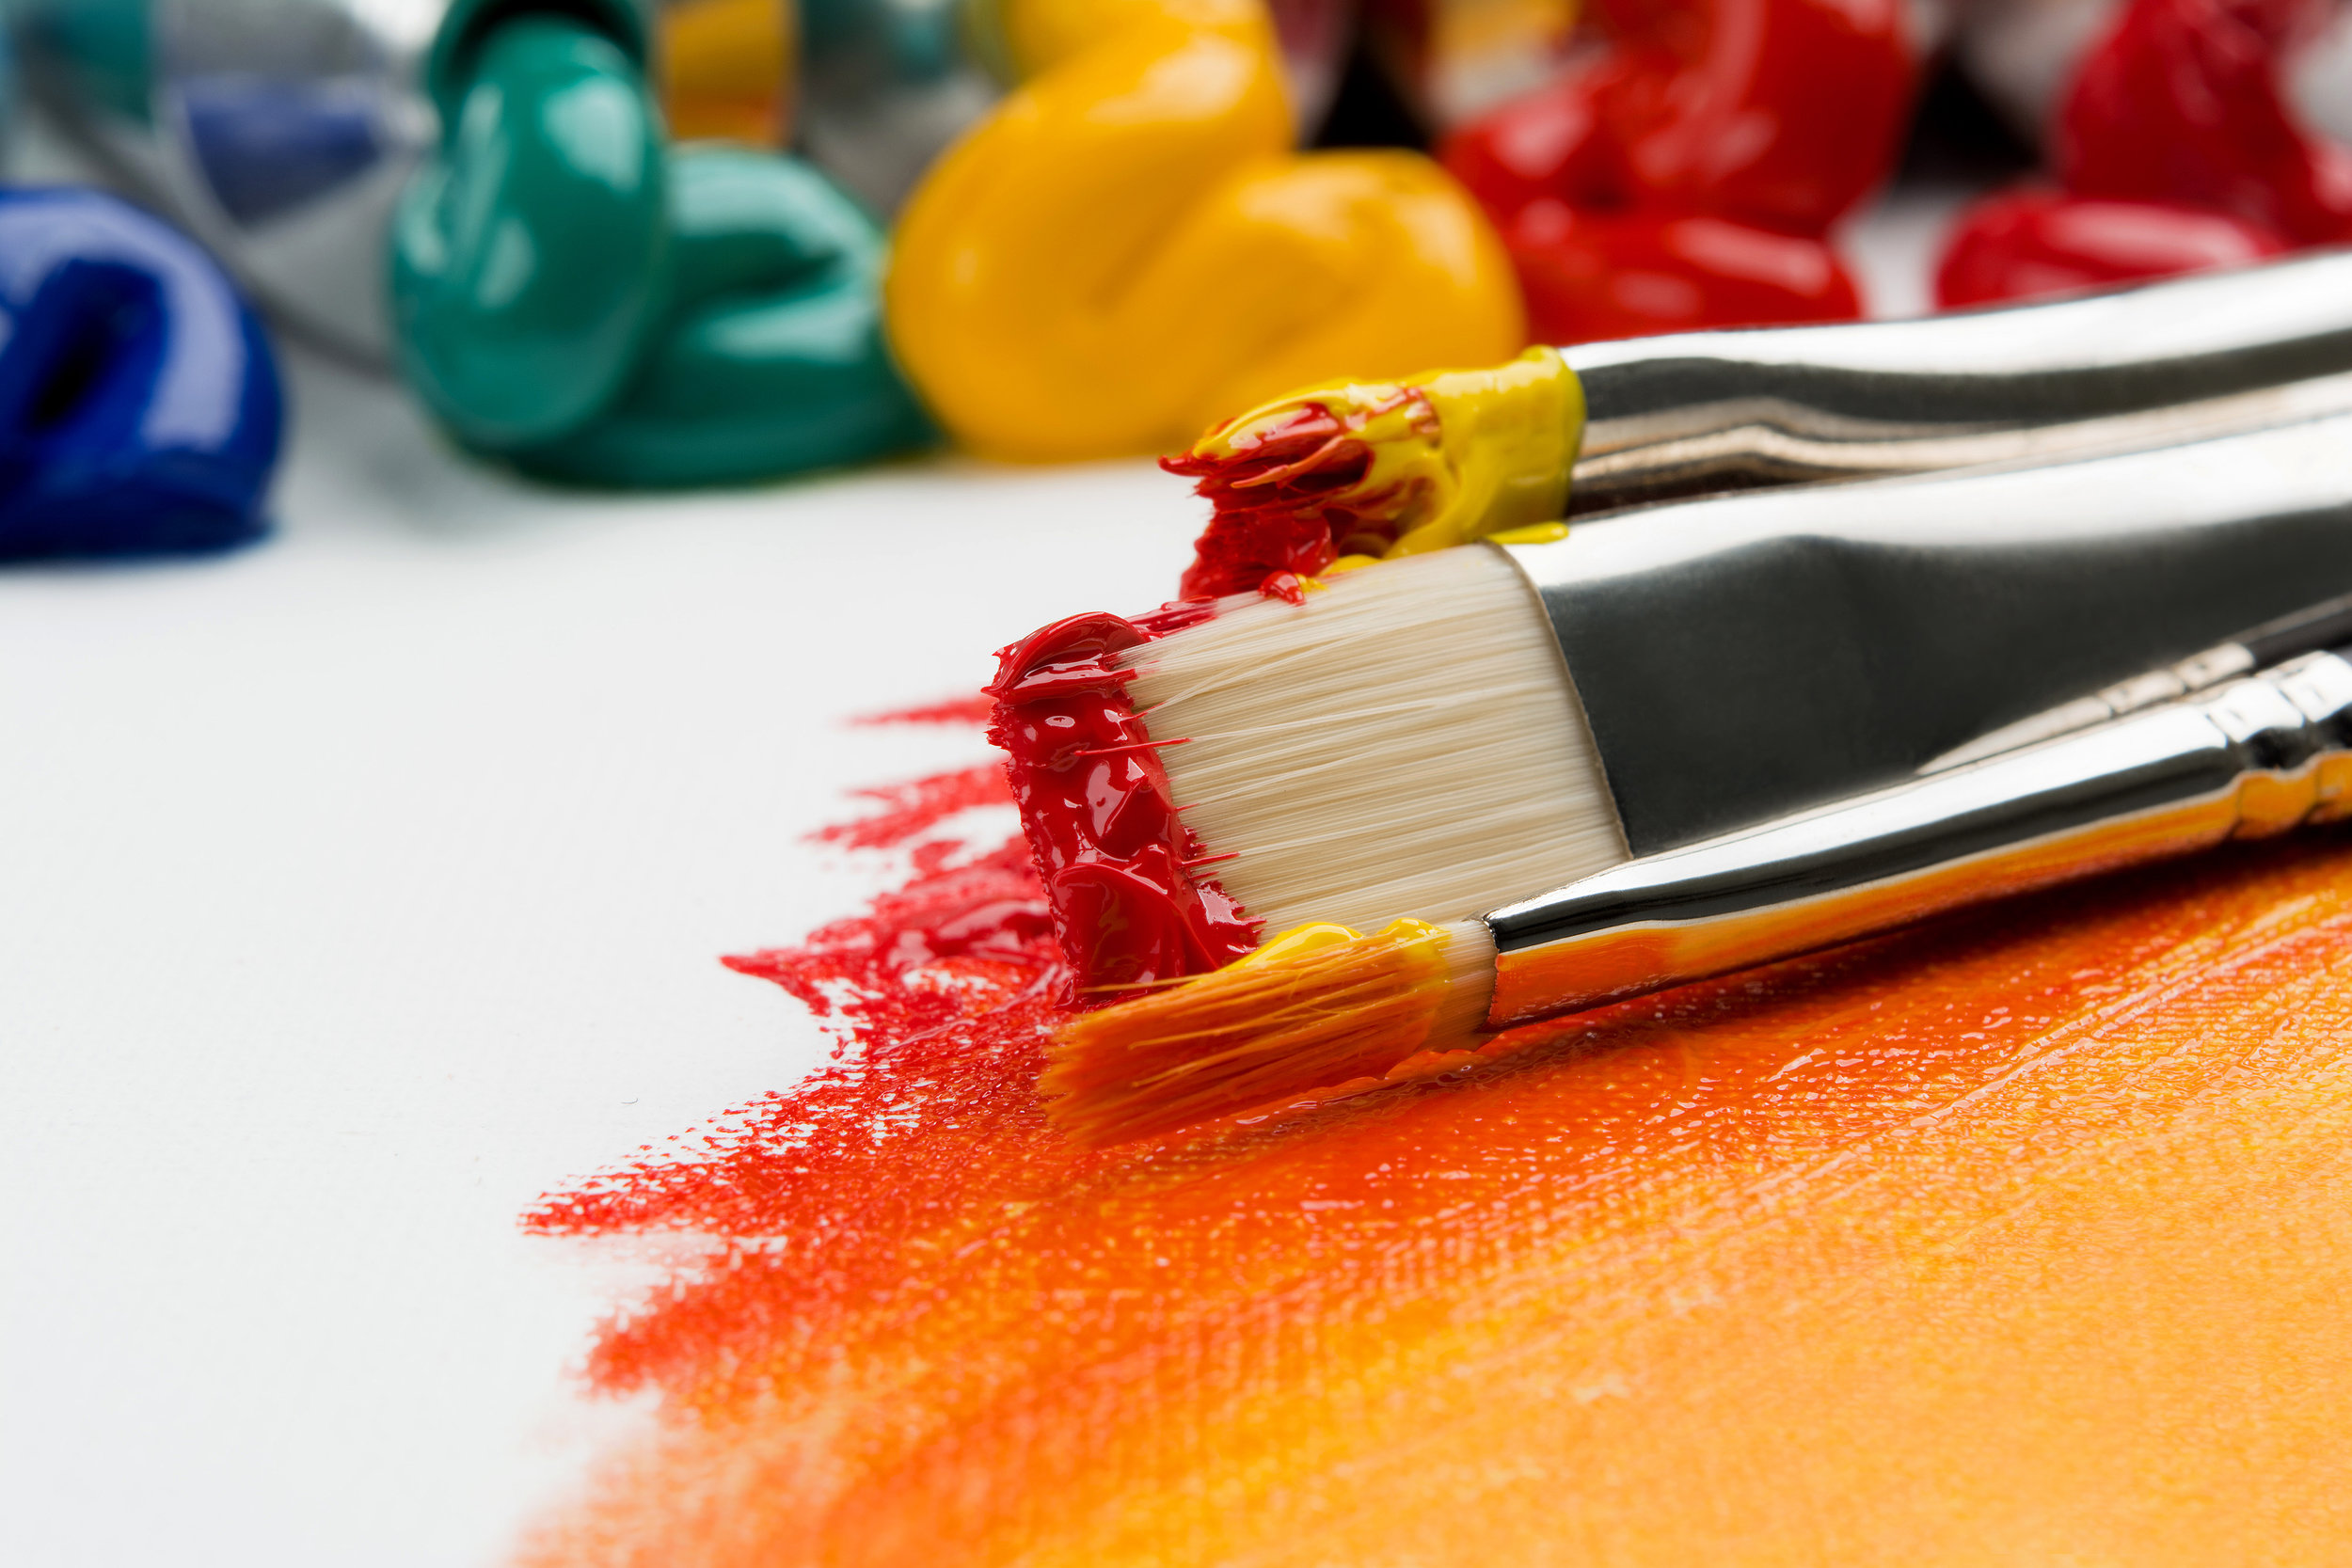 Paint brushes with paints